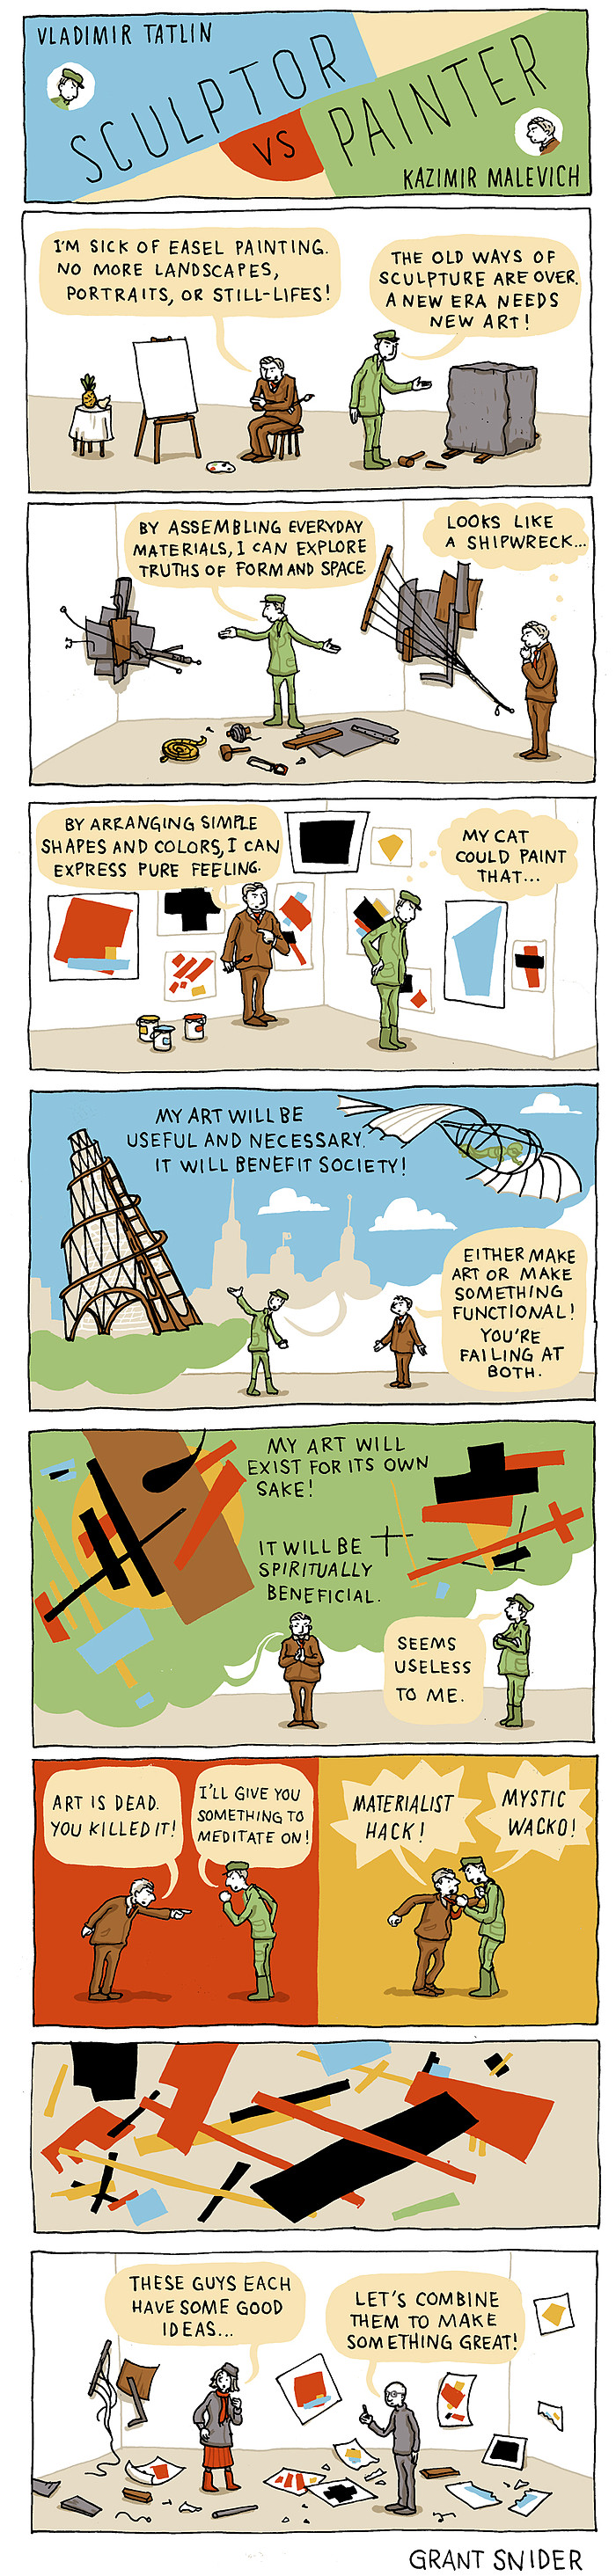 Sculptor vs. Painter